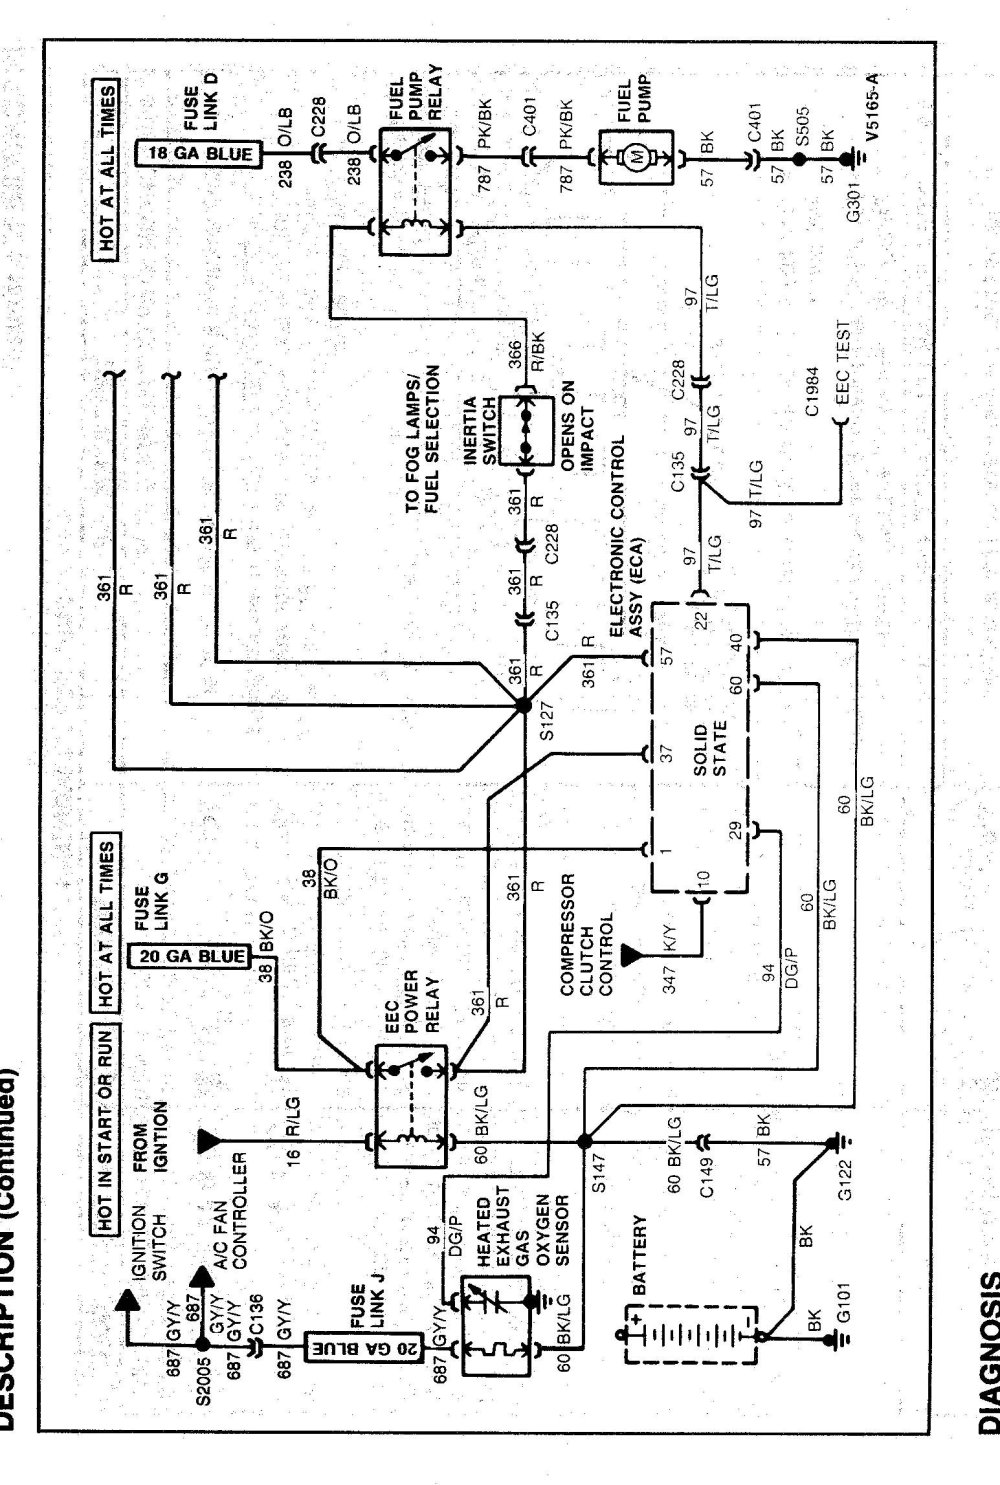 medium resolution of 1951d1051749150 need help fuel pump switch mustangfuelelectricaldiagram2 anyone know how to wire fuel pump for switch